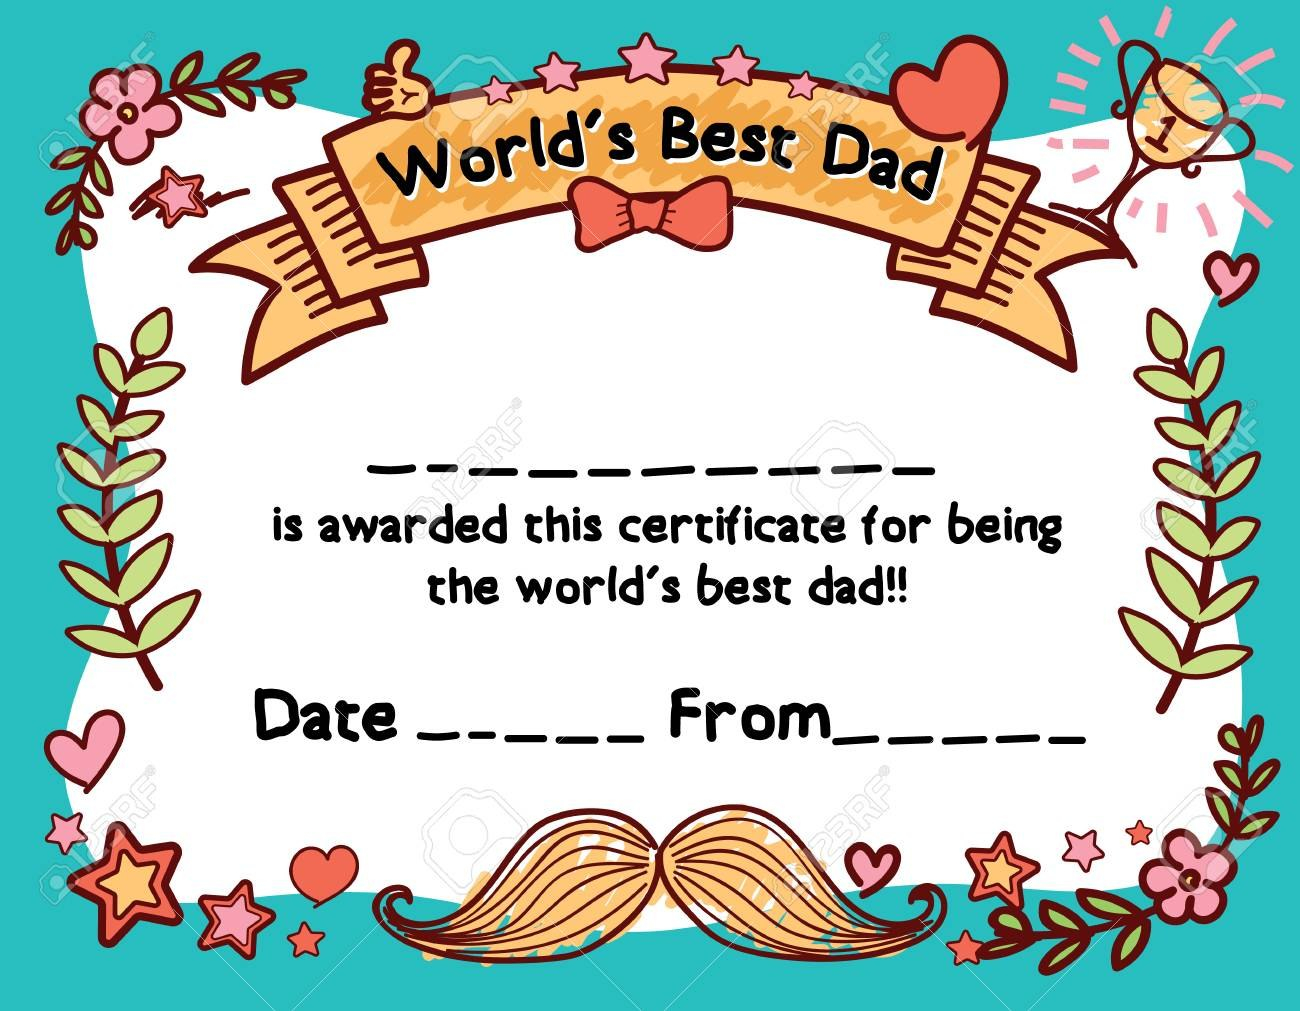 World's Best Dad Award Certificate Template For Father's Day Throughout Player Of The Day Certificate Template